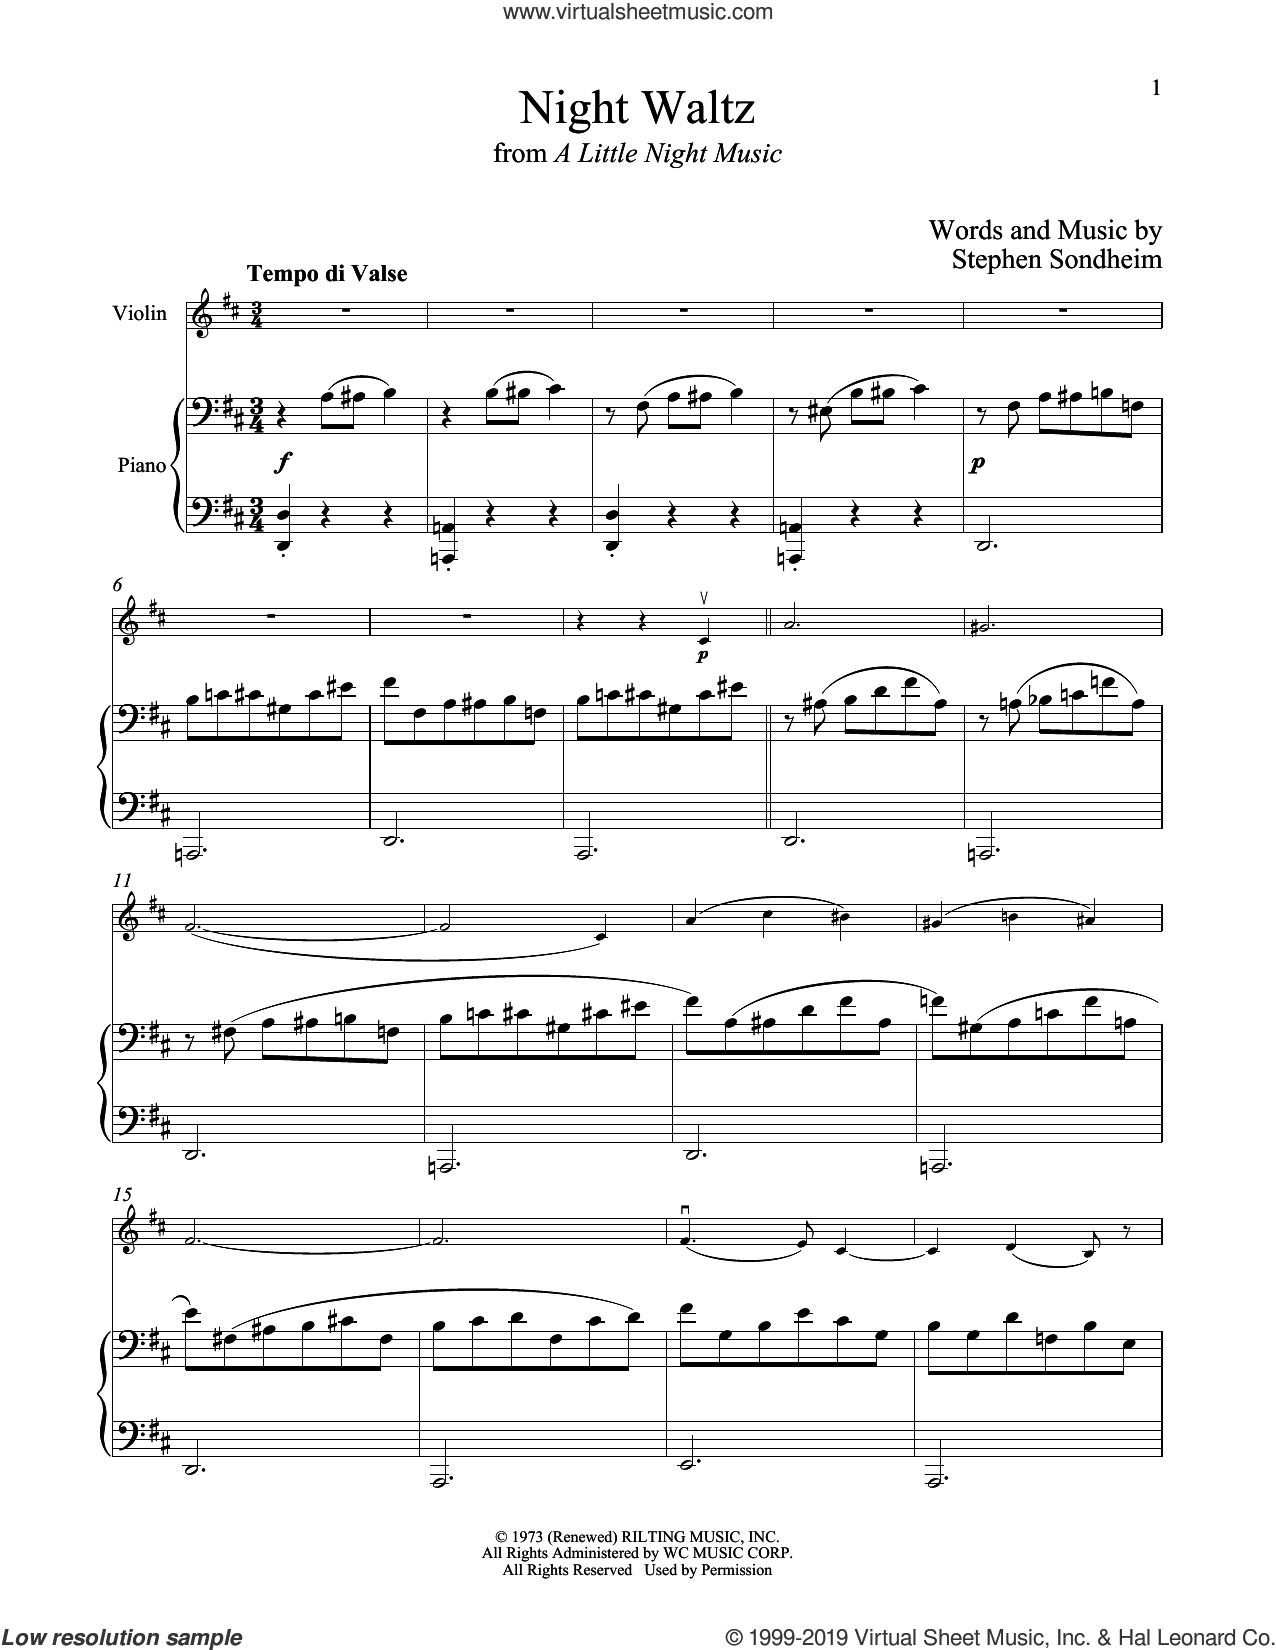 Night Waltz (from A Little Night Music) sheet music for violin and piano by Stephen Sondheim, intermediate skill level